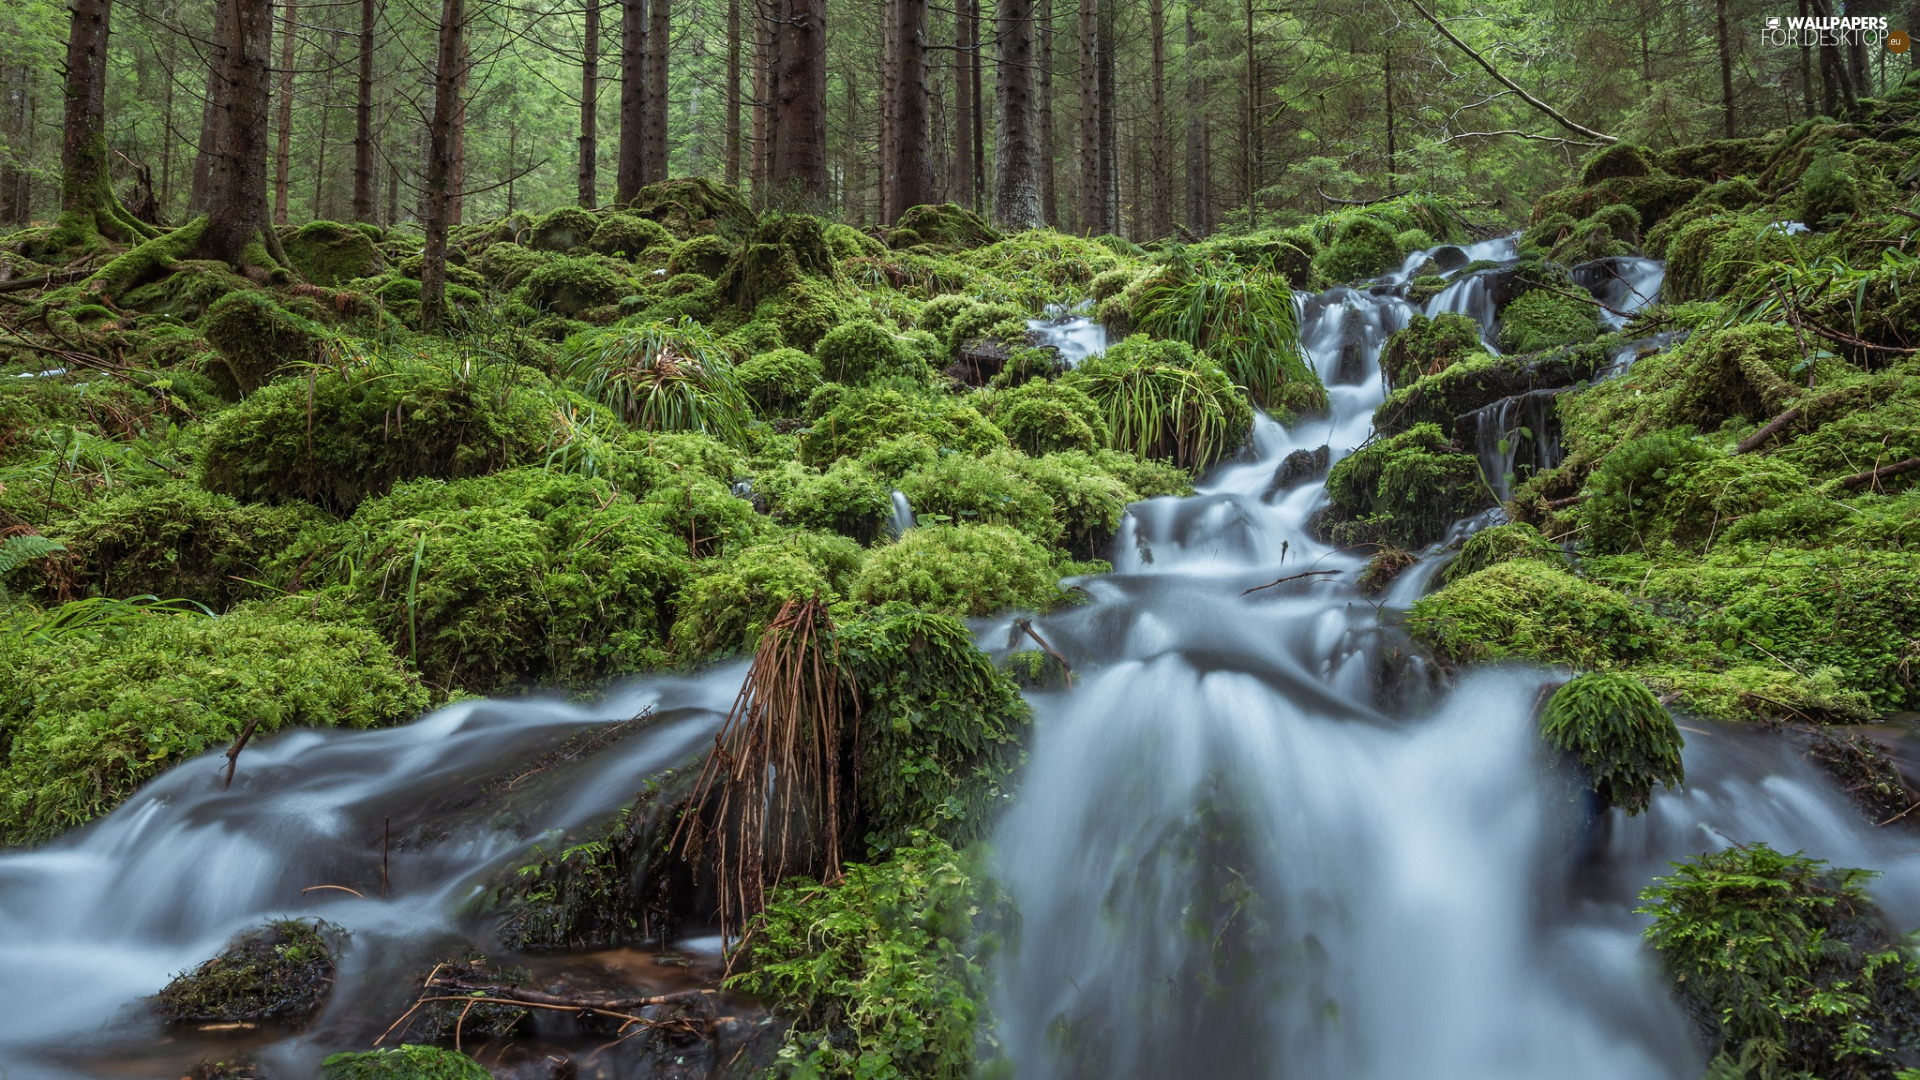 viewes, forest, waterfall, VEGETATION, River, trees